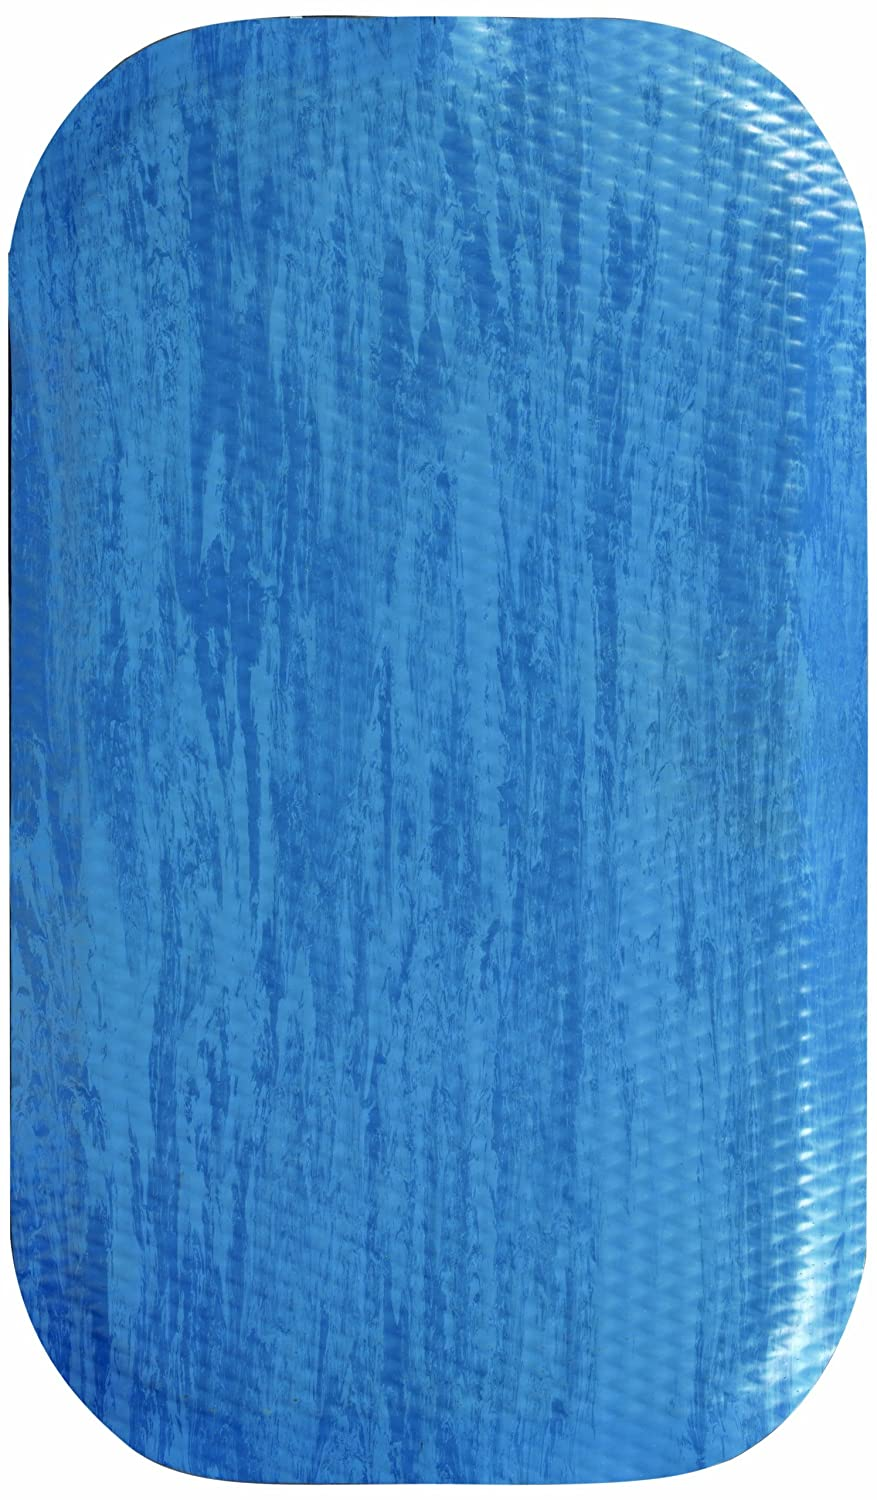 Andersen 448 Blue Merle Nitrile Rubber Hog Heaven Anti-Fatigue Mat, Marble Top, 5' Length x 3' Width x 5/8 Thick, For Indoor by Andersen B008BWQE1S